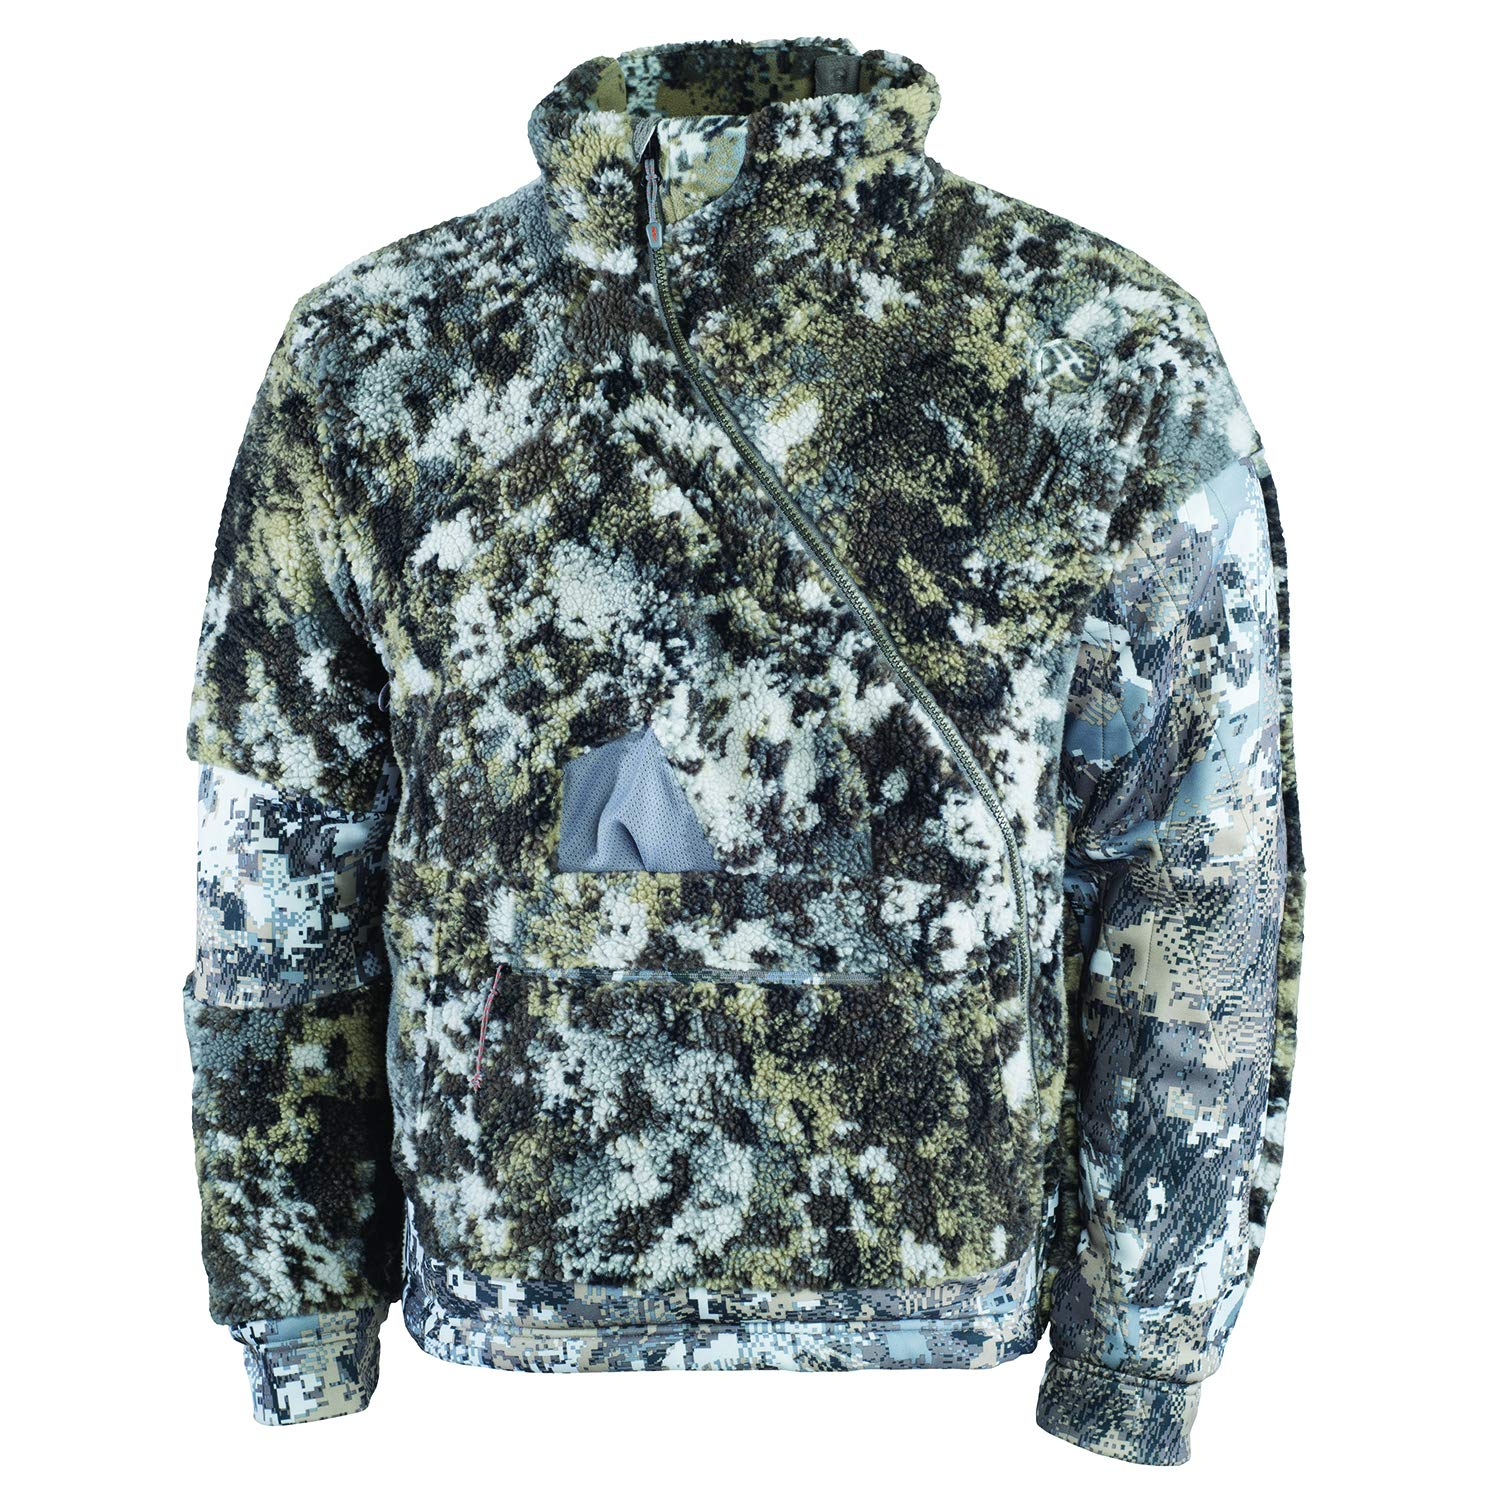 Amazon.com: SITKA Fanatic Jacket Optifade Elevated II ...